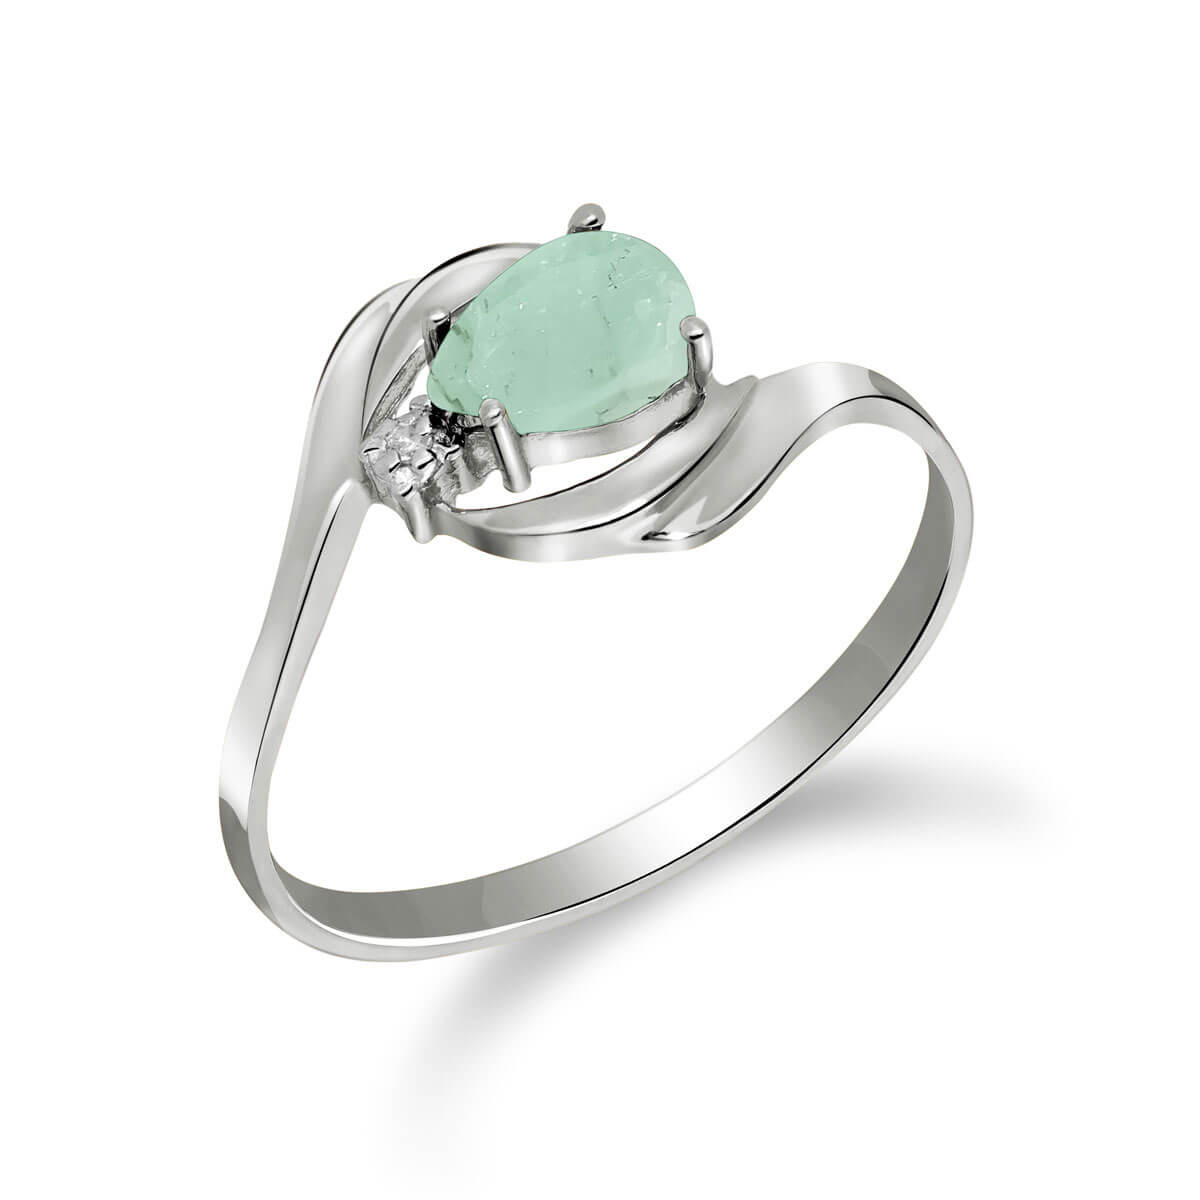 Emerald & Diamond Flare Ring in 9ct White Gold